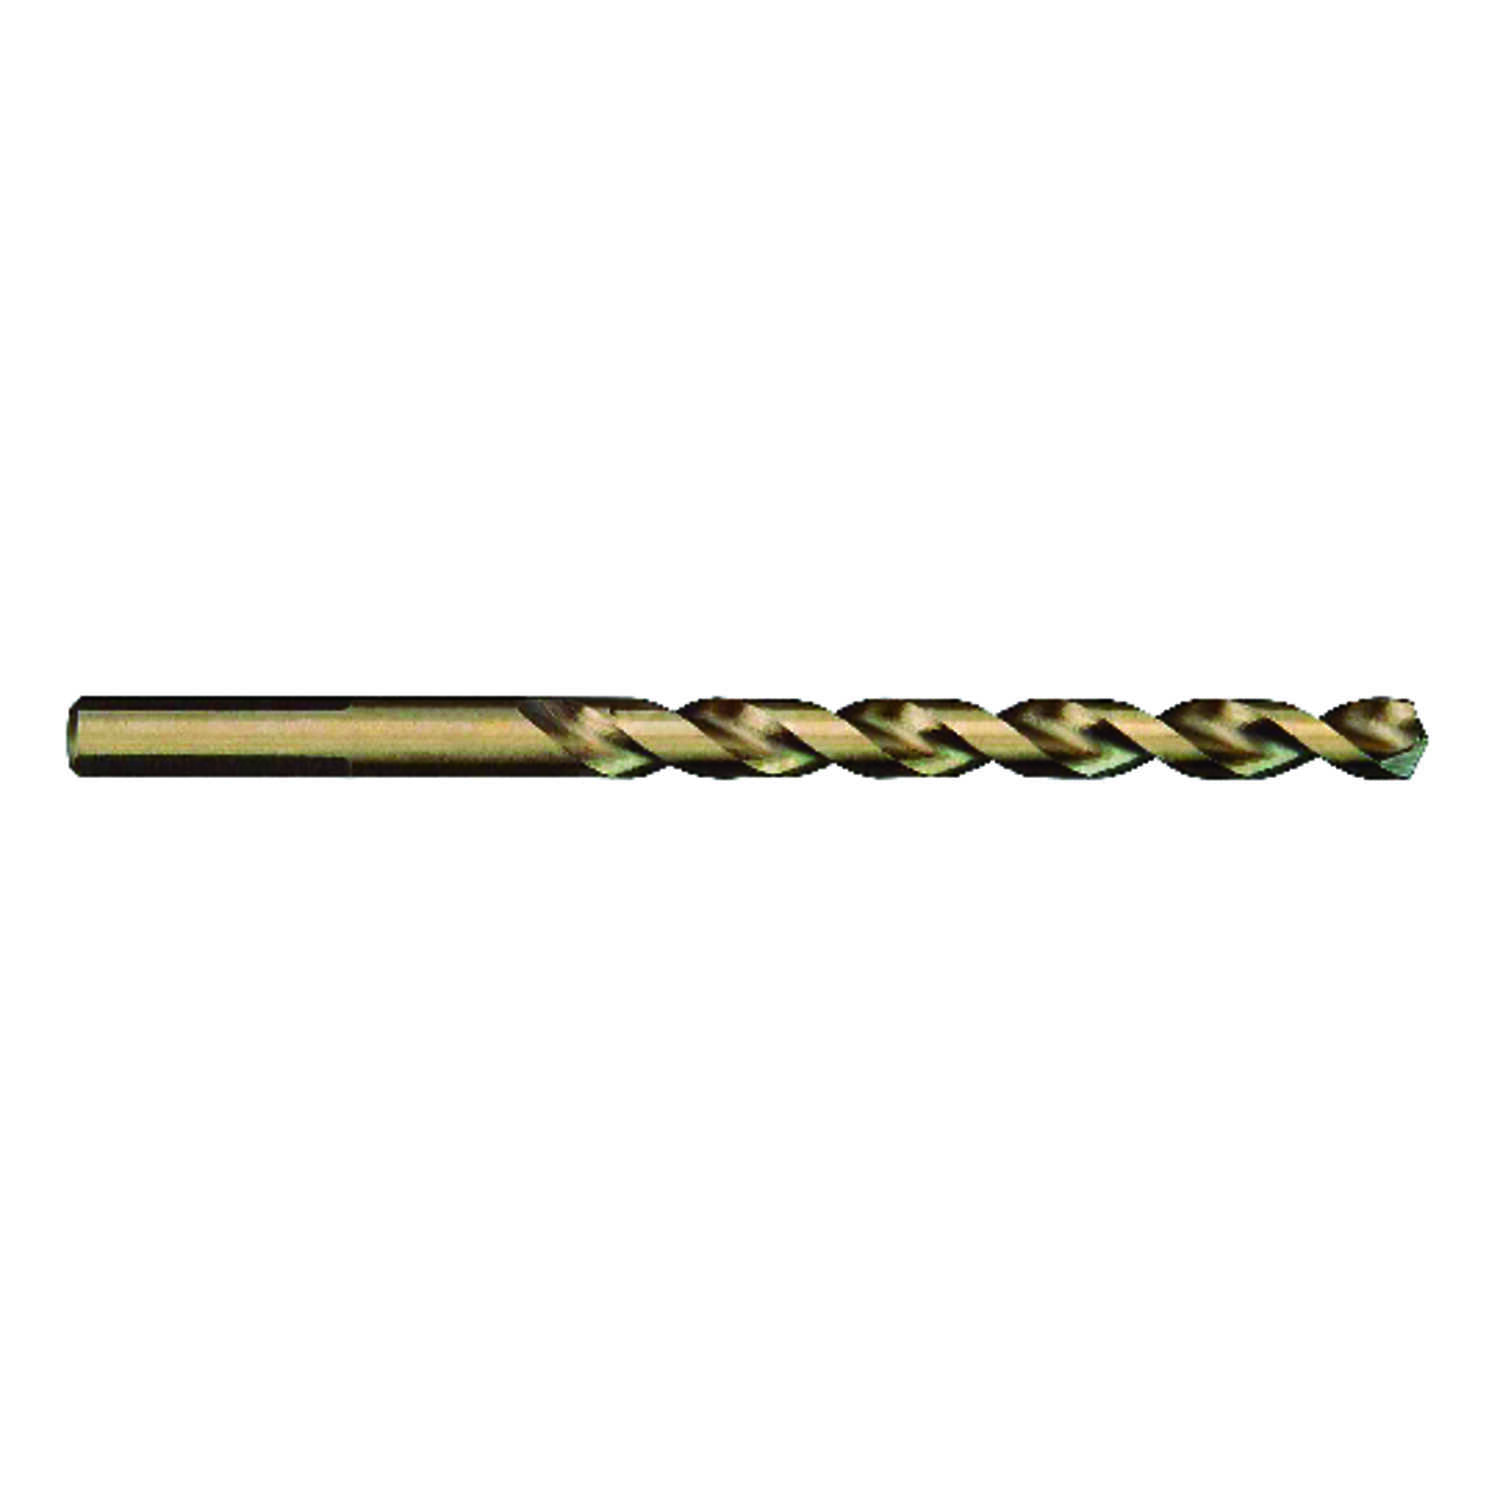 Milwaukee  RED HELIX  3/8 in. Dia. x 5 in. L Cobalt Steel  THUNDERBOLT  Drill Bit  1 pc.